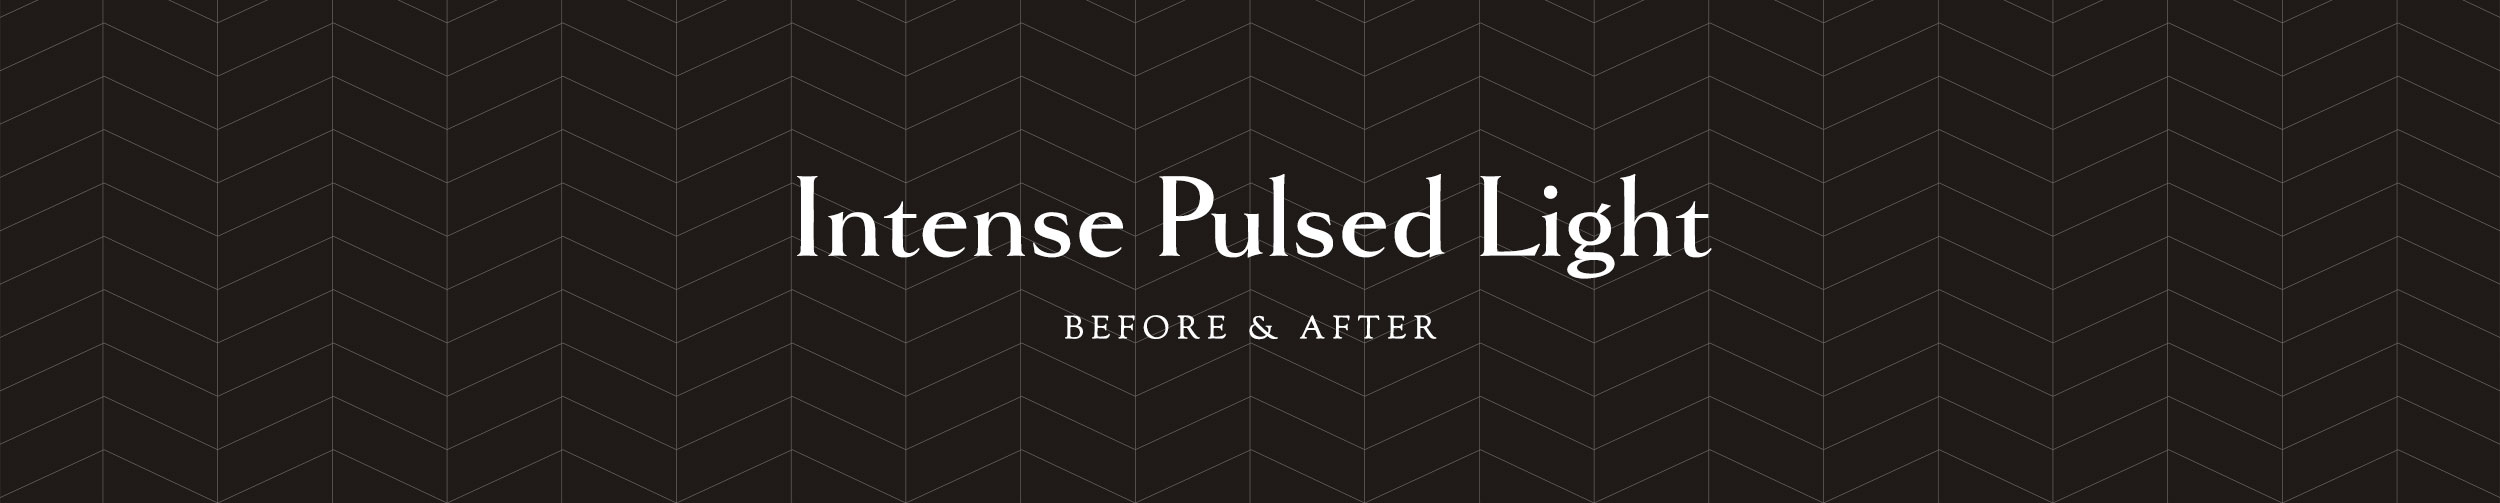 IntensedPulsedLight_Before&After.png